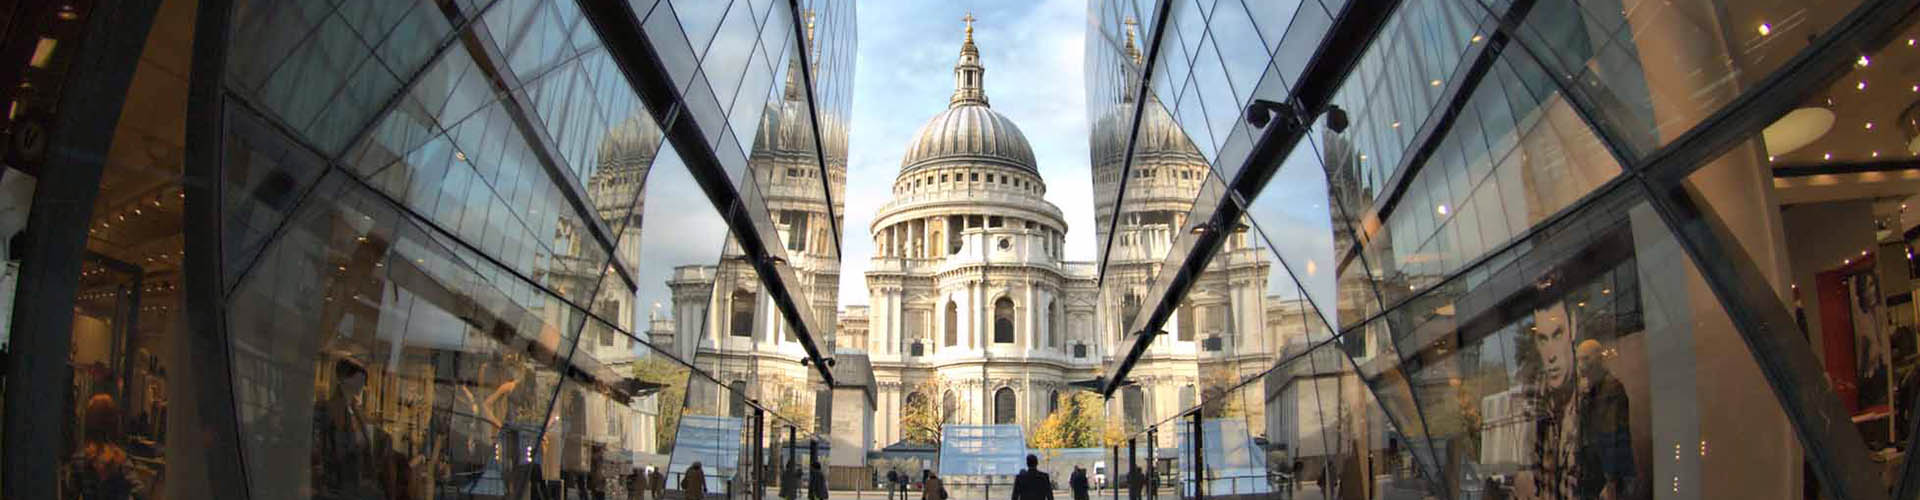 Cathedral St' Pauls - Discover London Tours